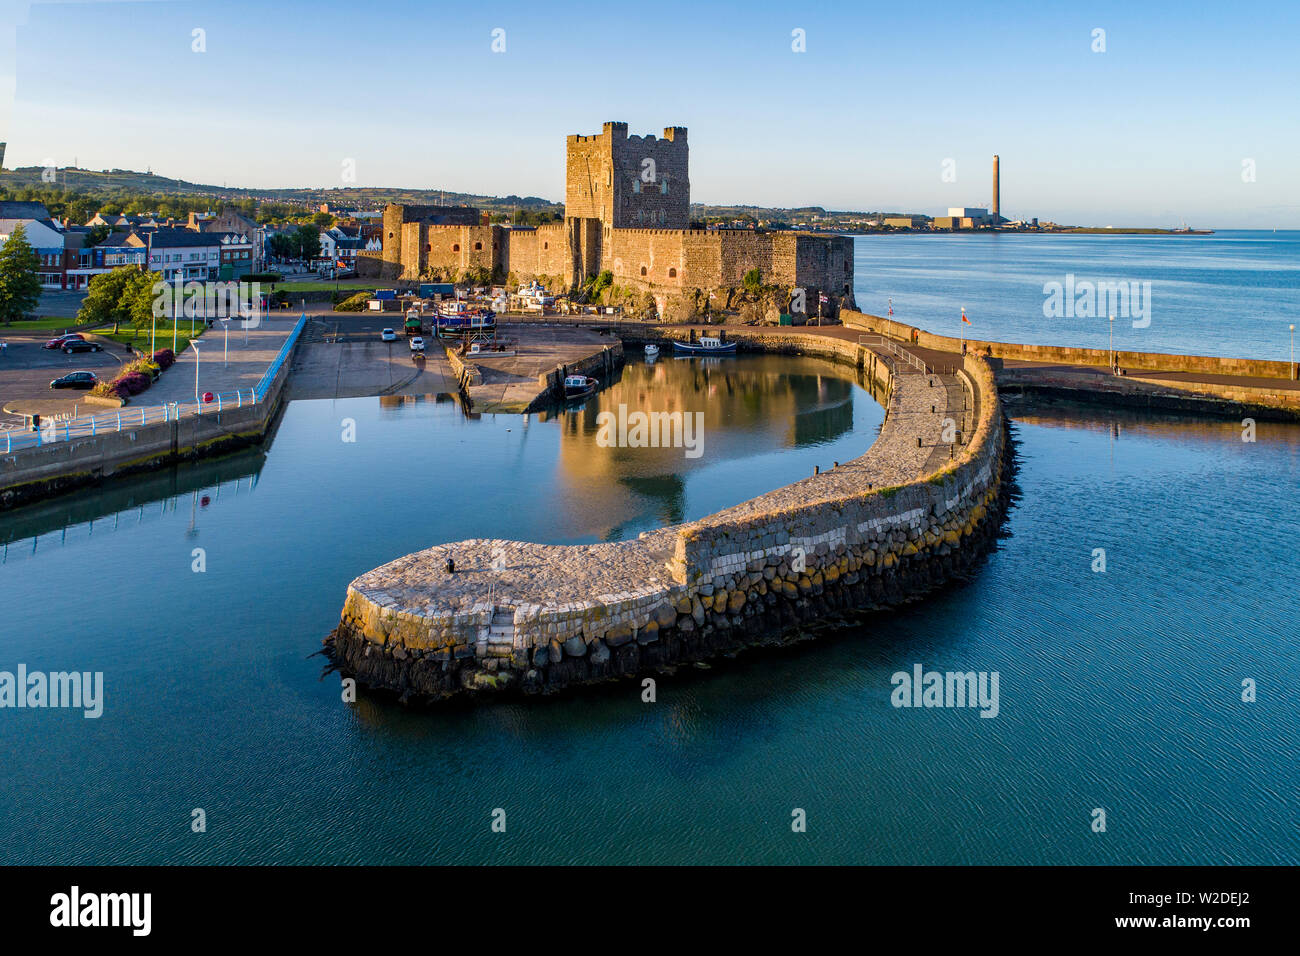 Medieval Norman Castle and harbor in Carrickfergus near Belfast, Northern Ireland, UK. Aerial view  in sunset light. Old power plant in the background - Stock Image